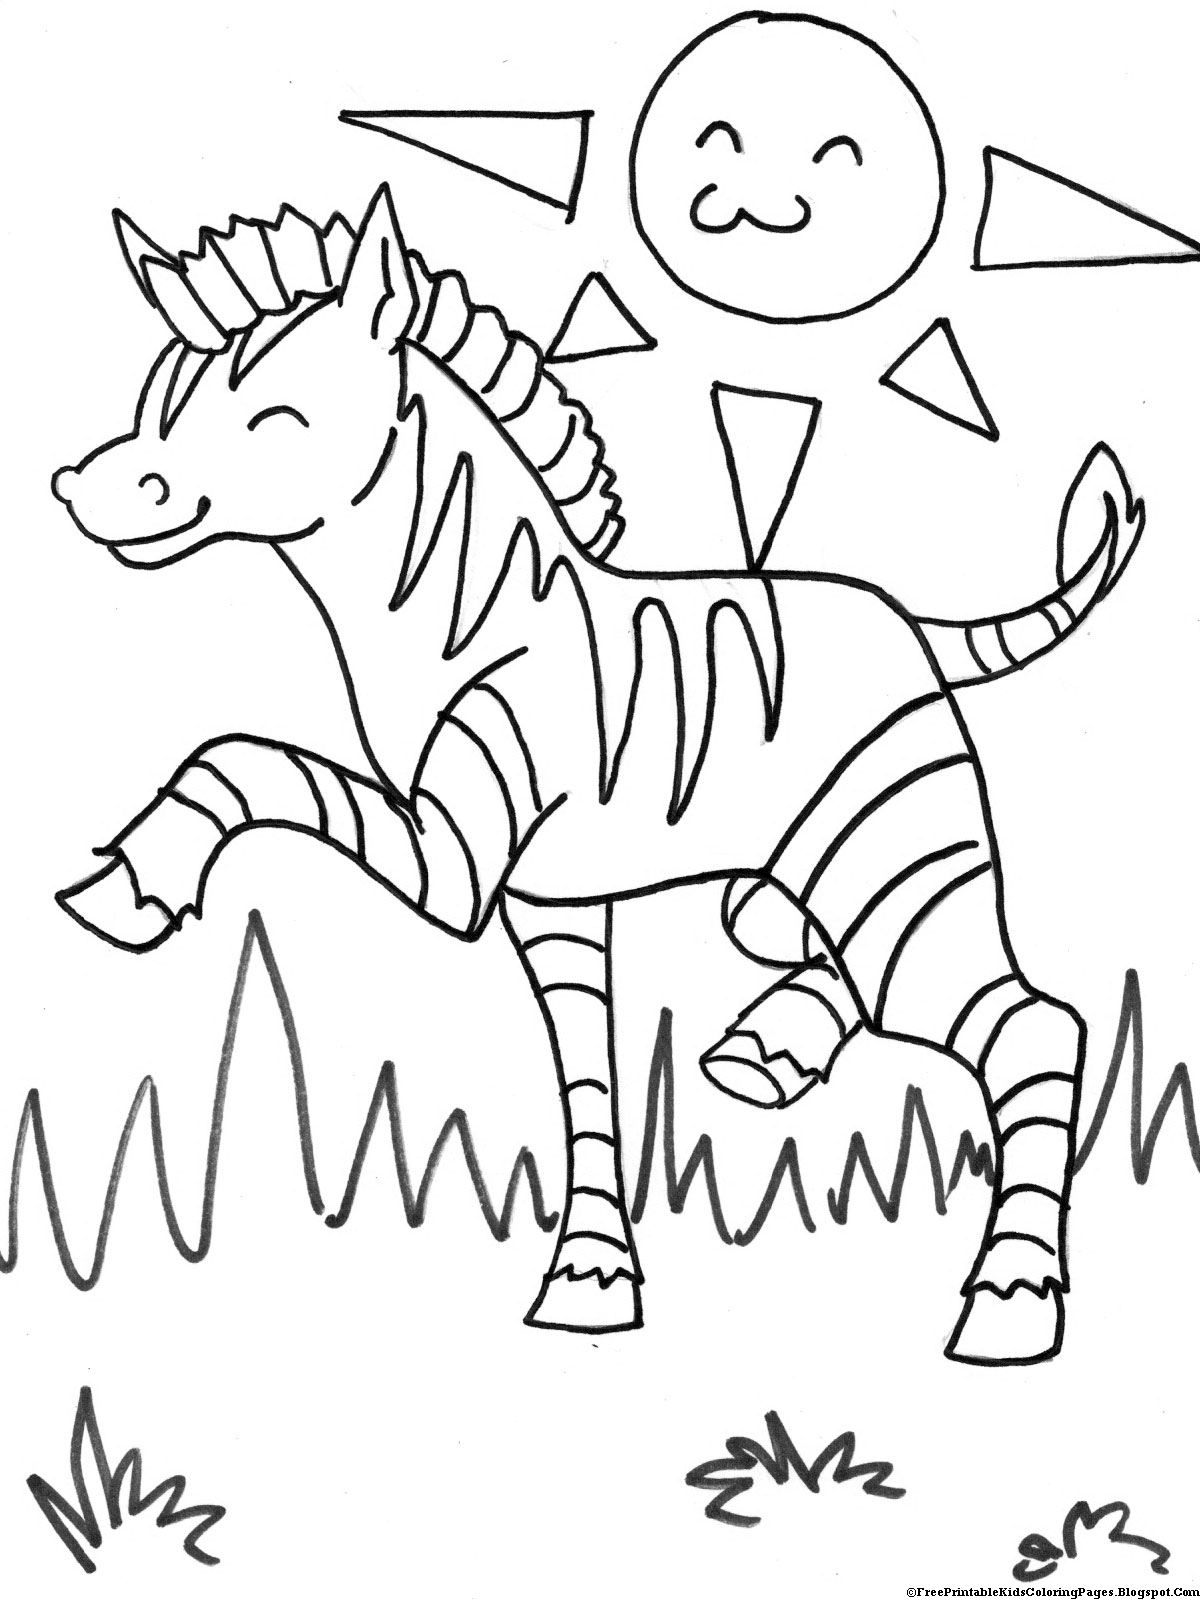 printable coloring book pages elephant coloring pages for kids printable for free book printable coloring pages